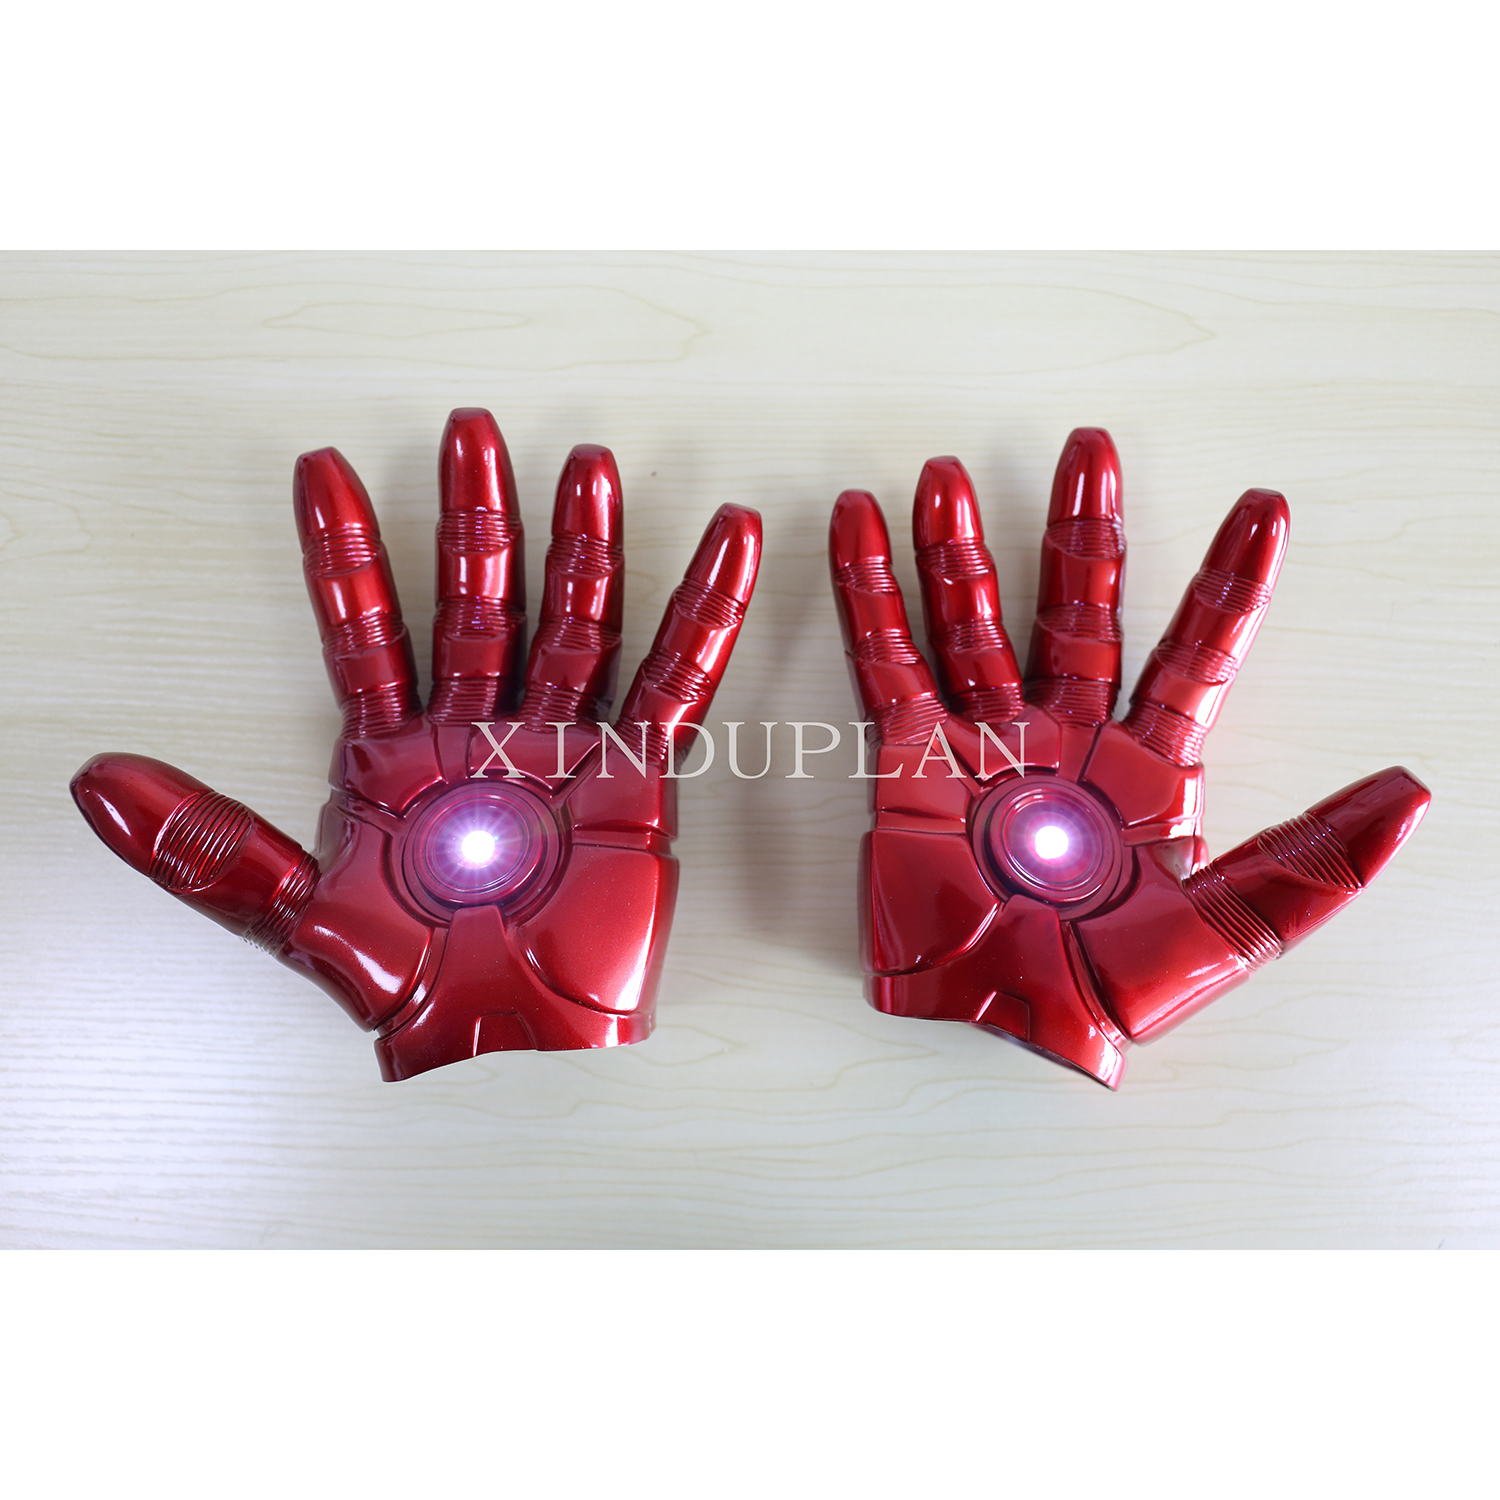 XINDUPLAN Marvel Shield Movie Avengers iron Man Gloves Light Cosplay Action Figure Toys Juguete 1/1 20cm Collection Model 0296 new hot 17cm avengers thor action figure toys collection christmas gift doll with box j h a c g